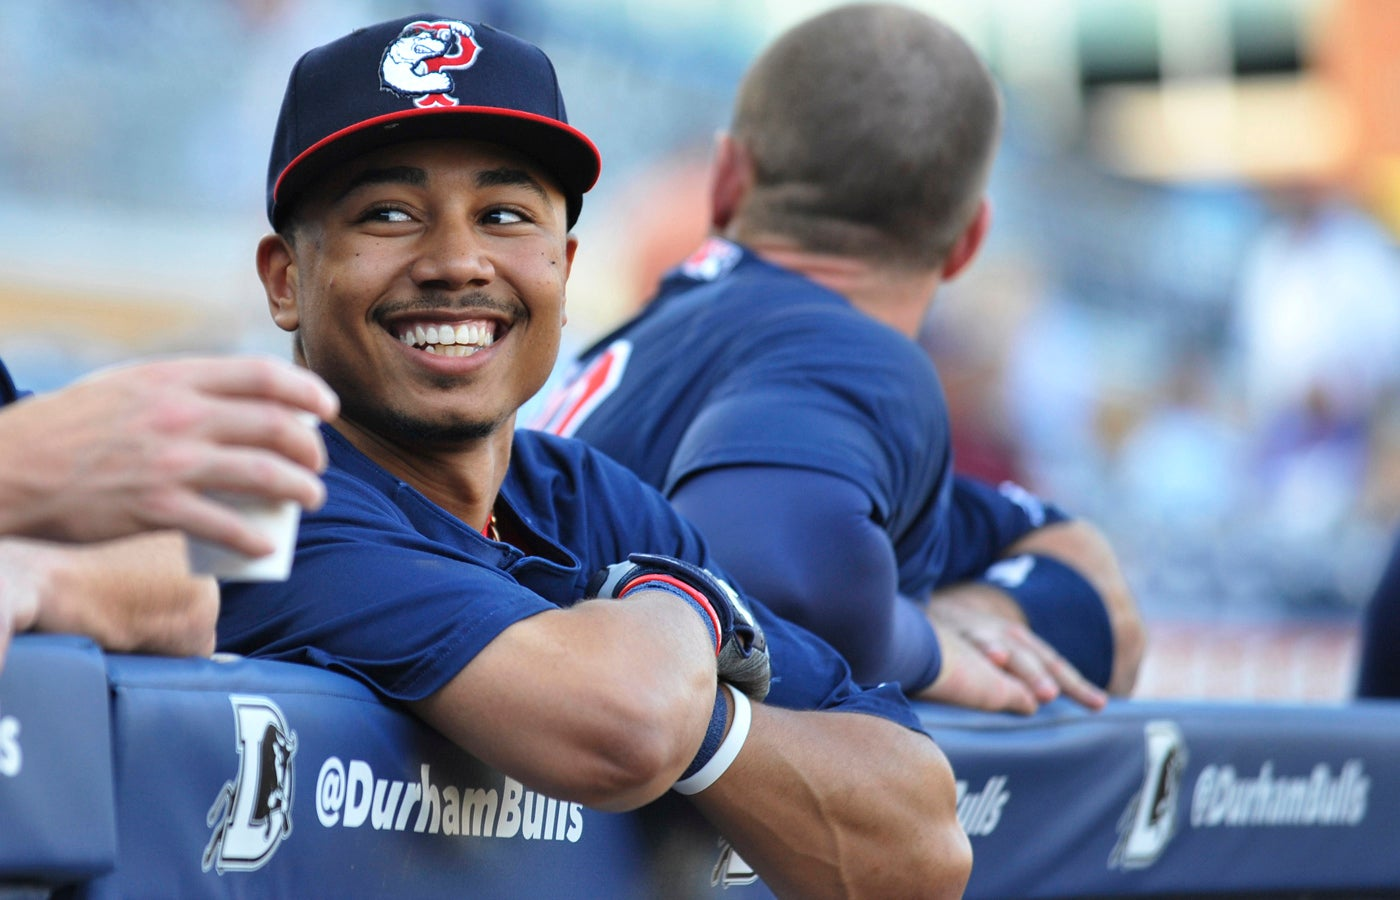 Mookie_Betts_BG_298-13468-14283.jpg